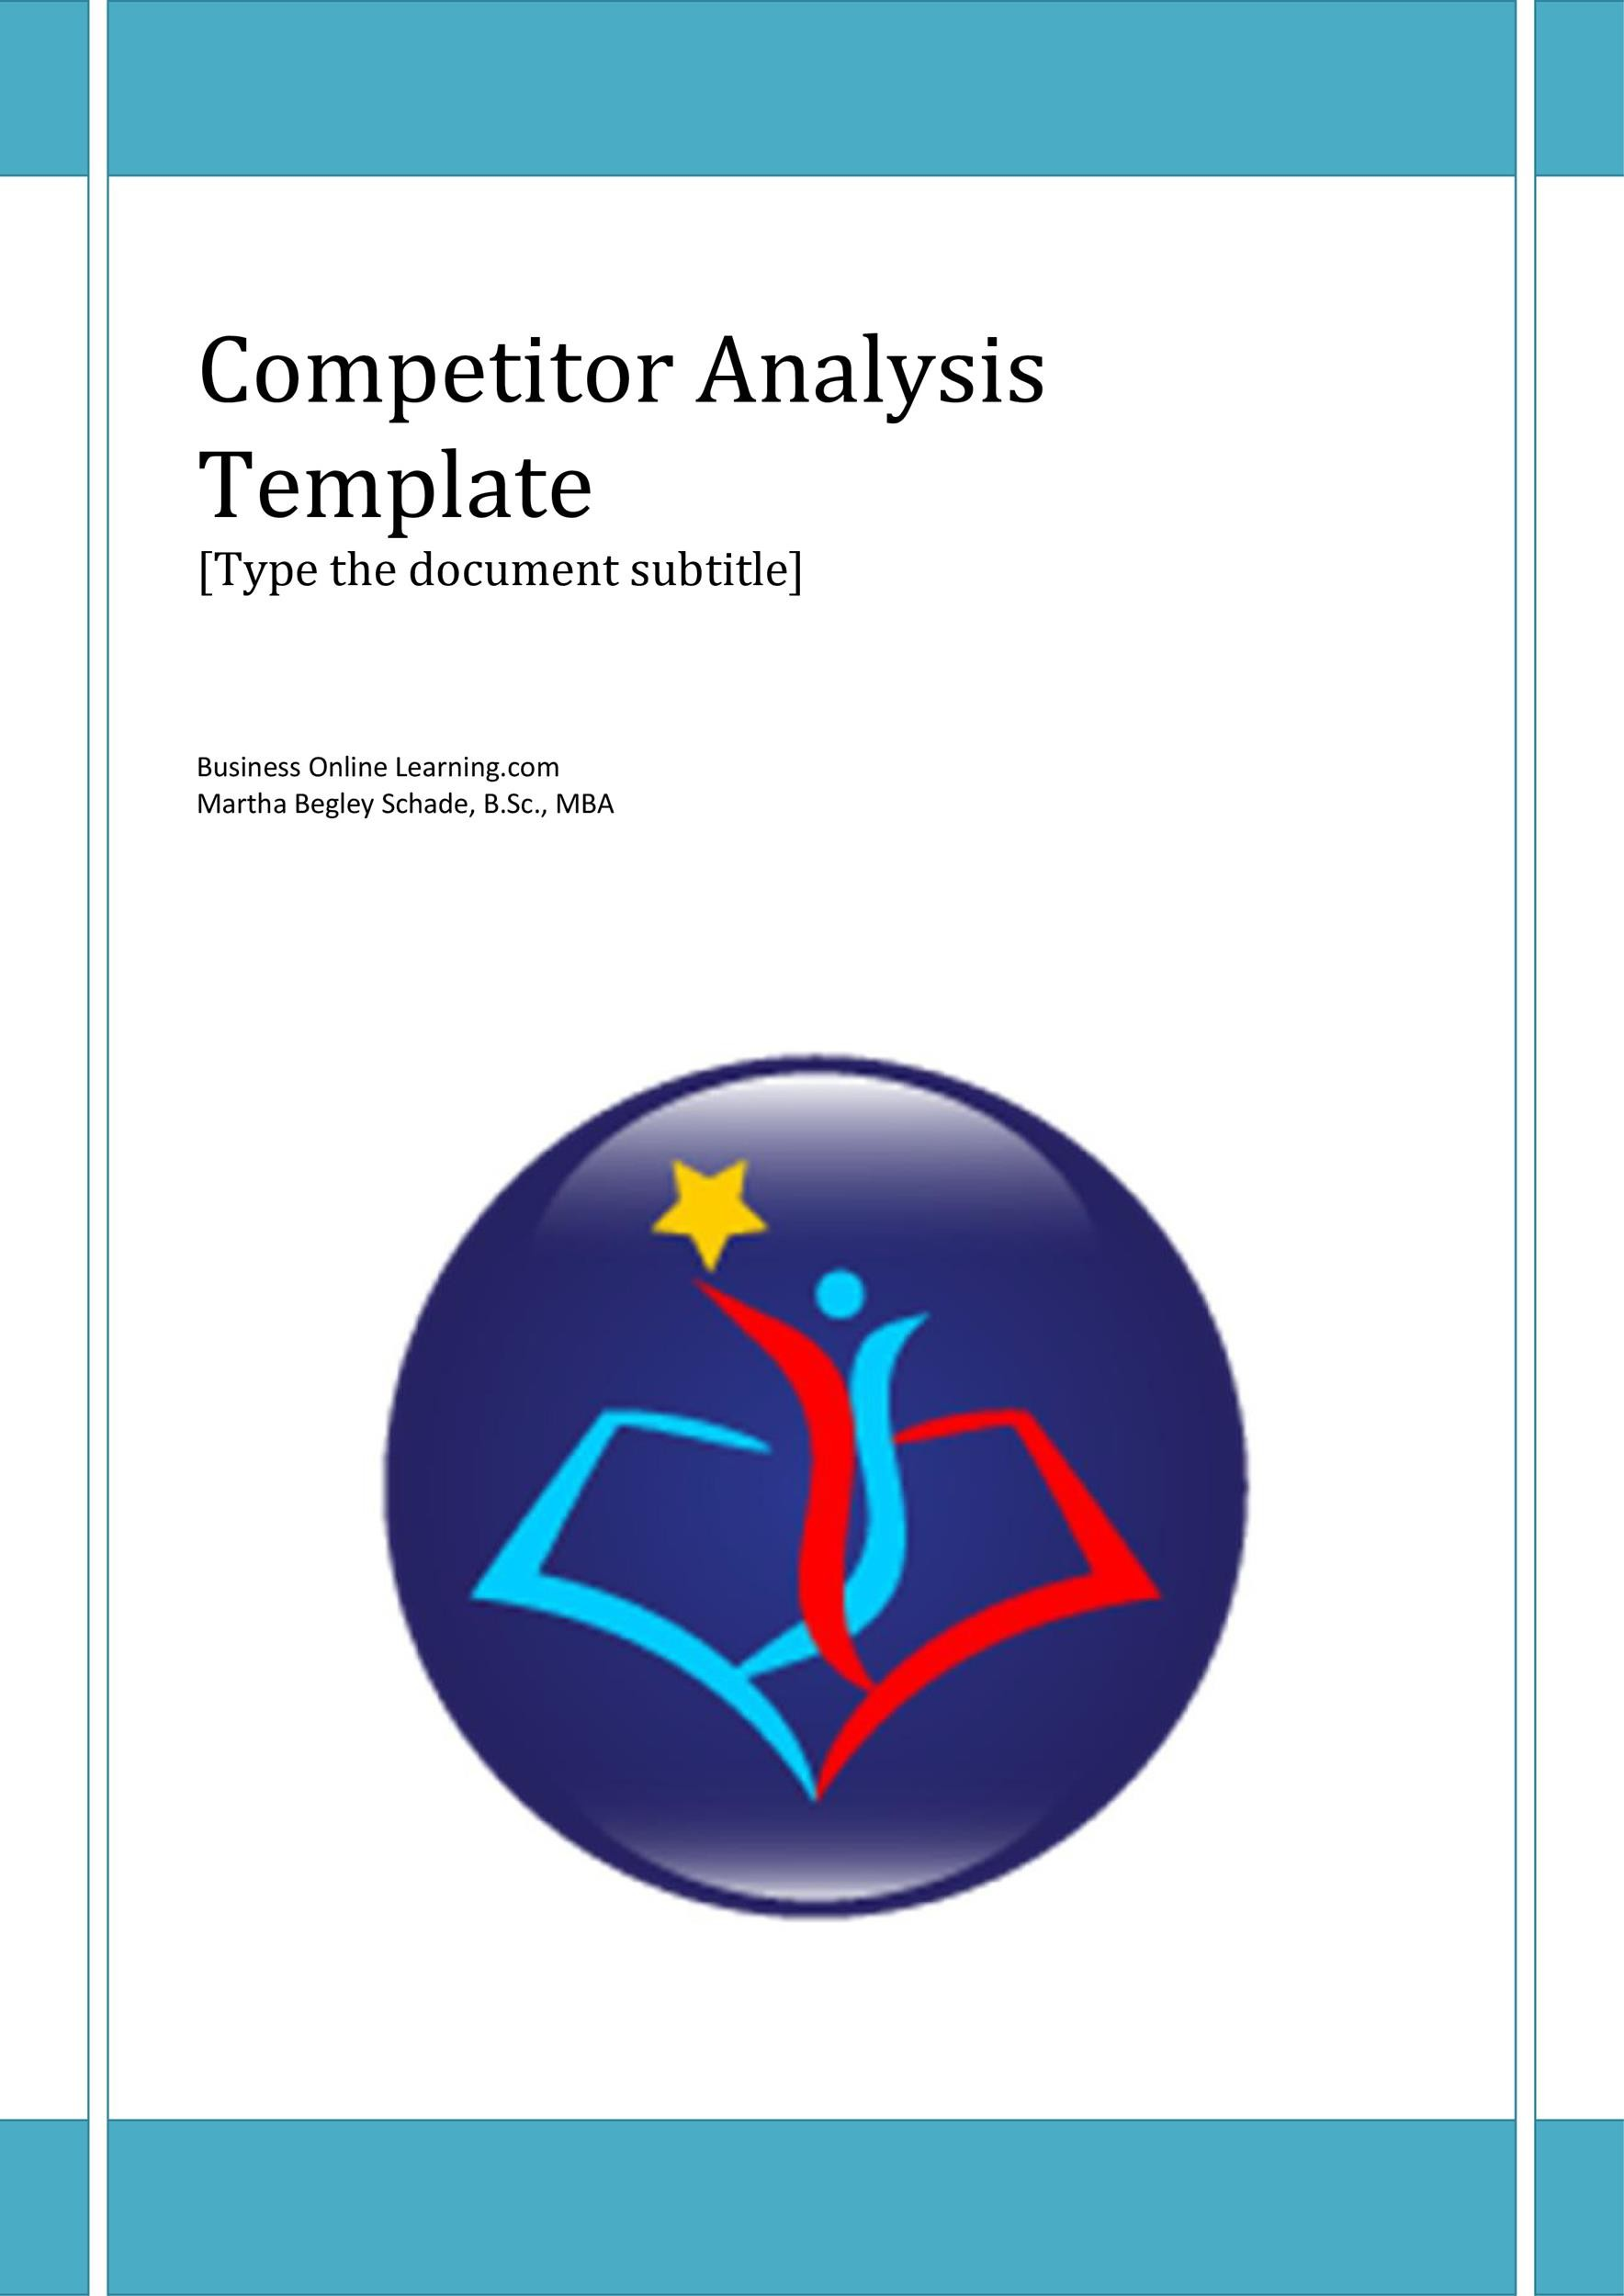 Free competitive analysis template 37